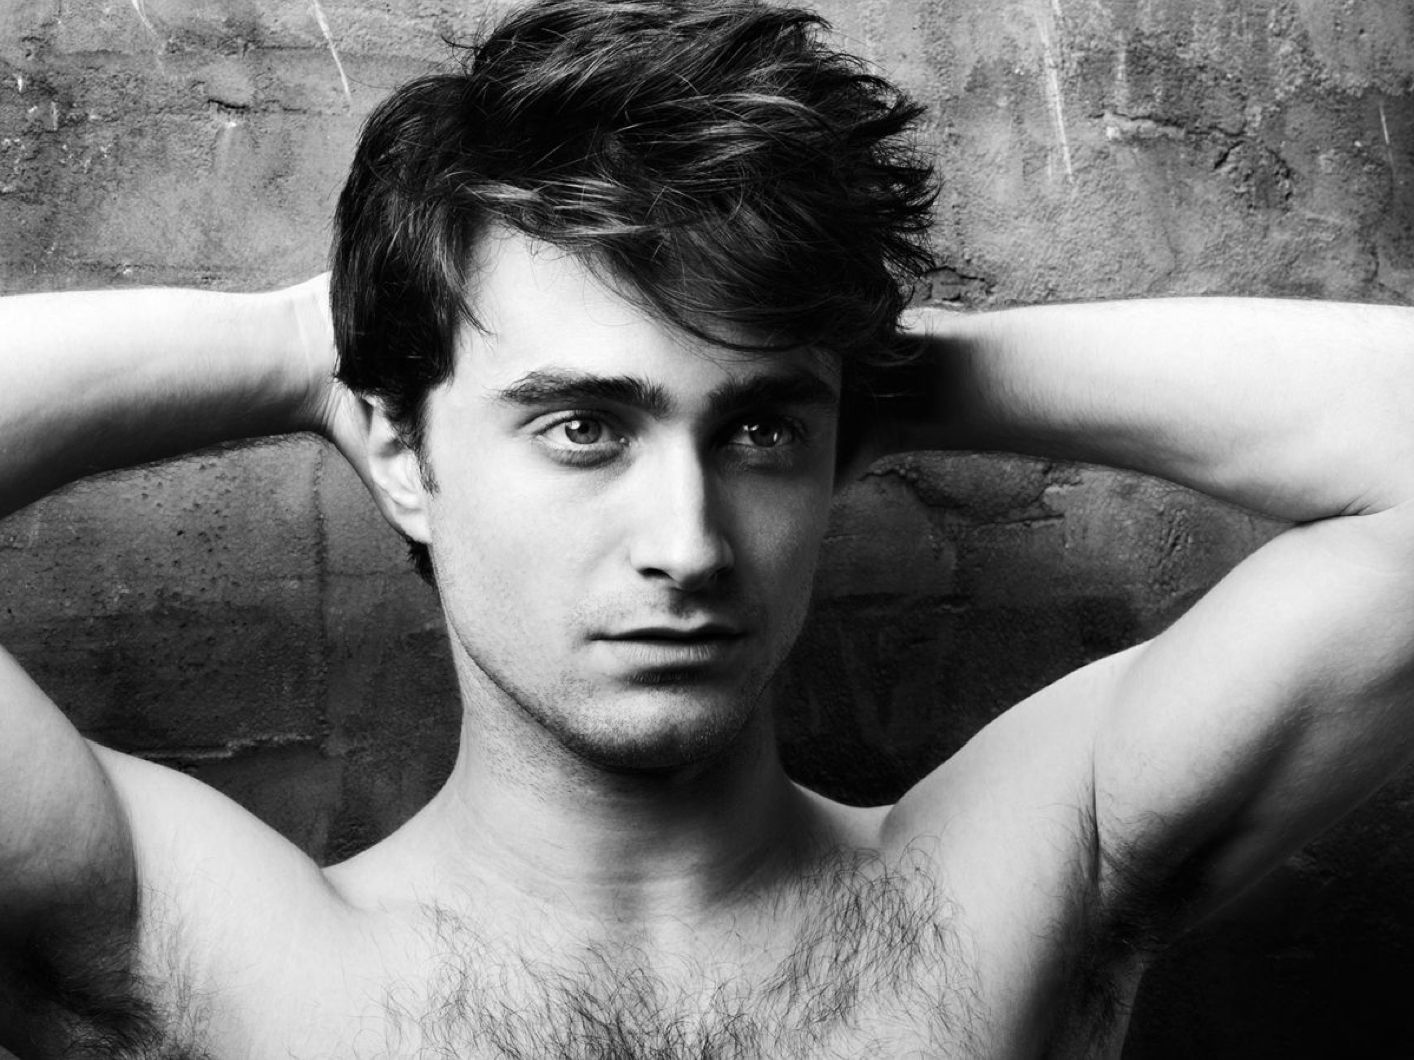 Picture about daniel jacob radcliffe all about man and male - Hd Wallpaper And Background Photos Of Warrick Saint Photoshoot For Fans Of Daniel Radcliffe Images